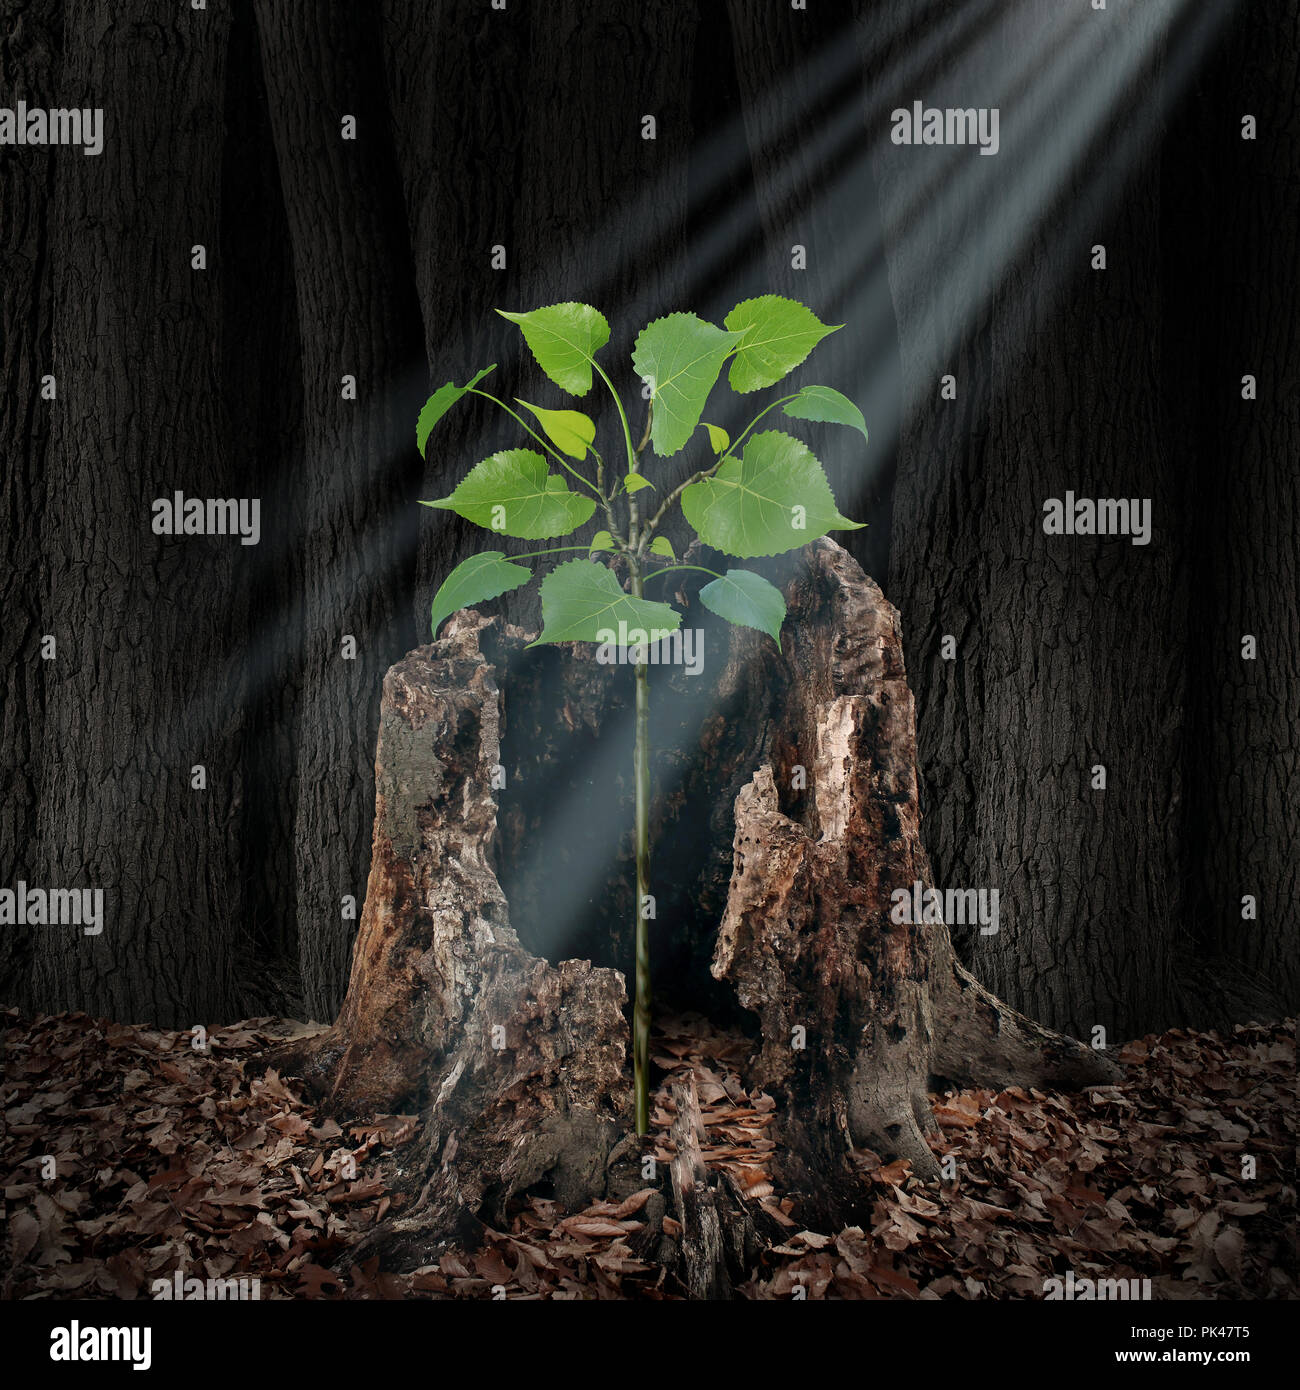 Believe and faith concept as a ray of light shining from above on a sapling growing out of a dead tree as a hope and spirituality idea. - Stock Image